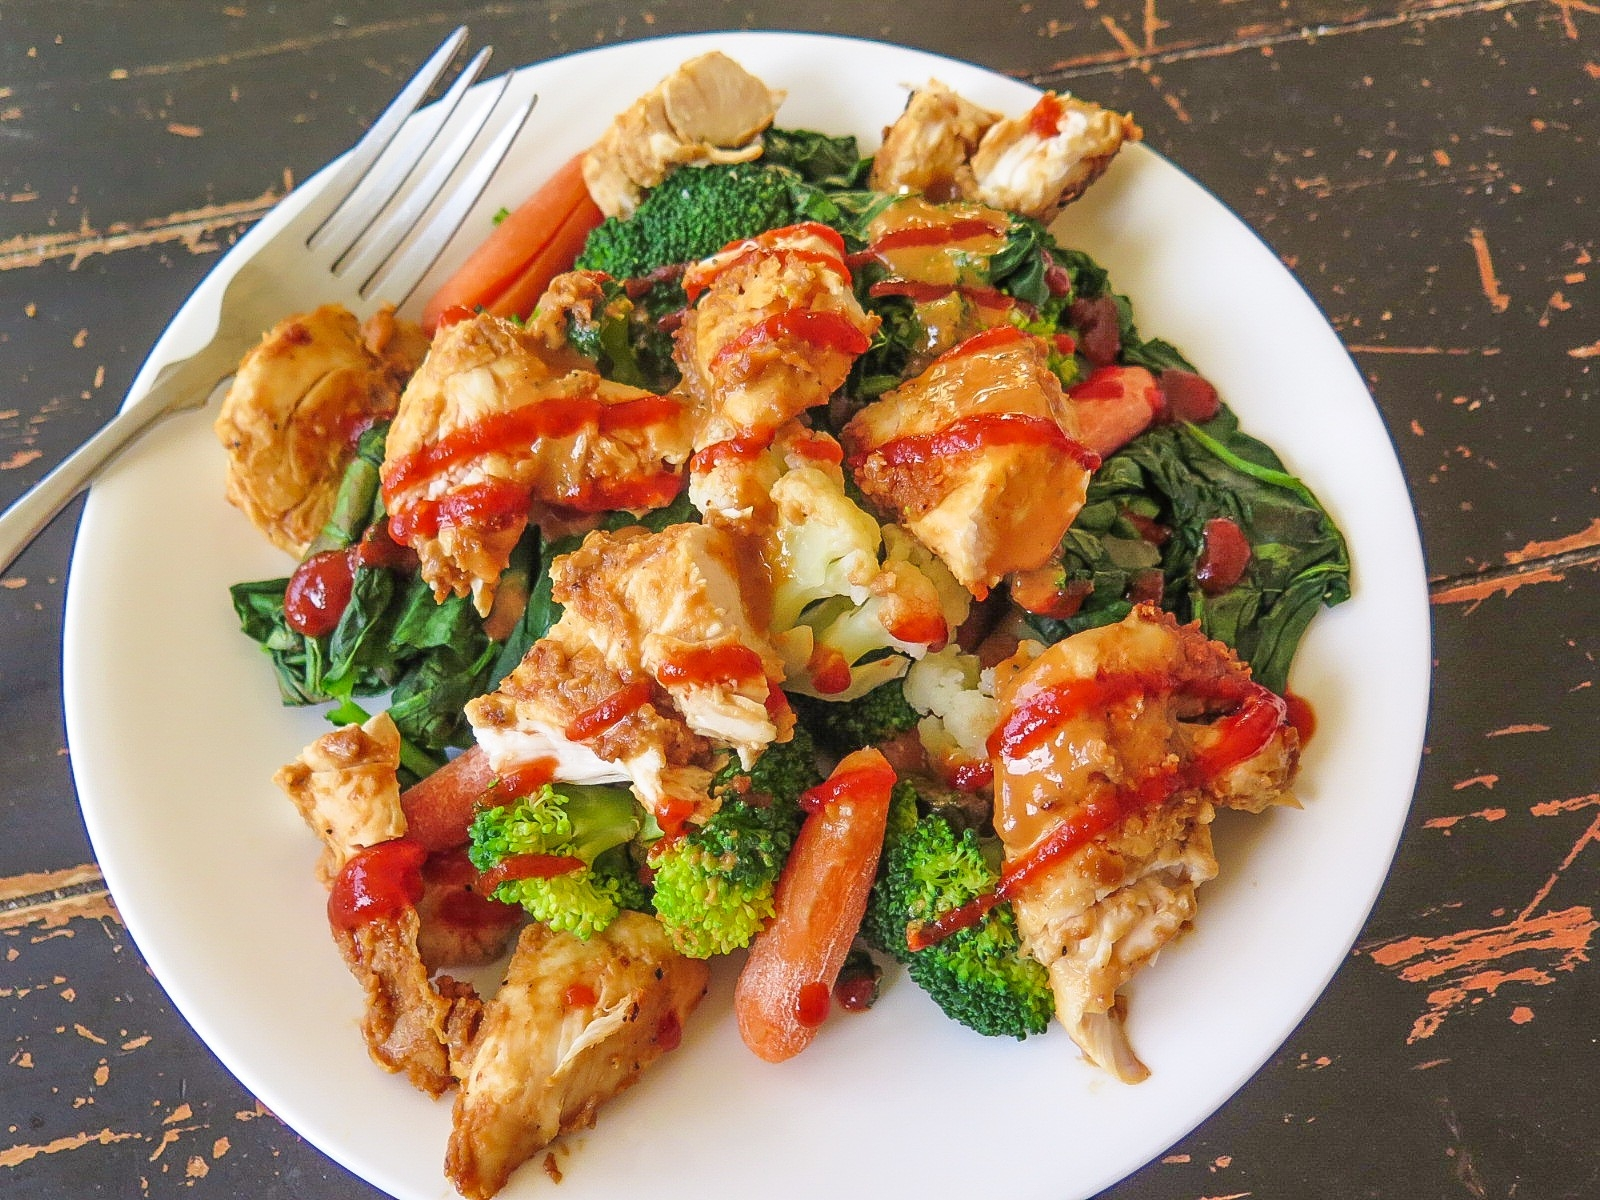 Ripped Recipes - Spicy Peanut Chicken